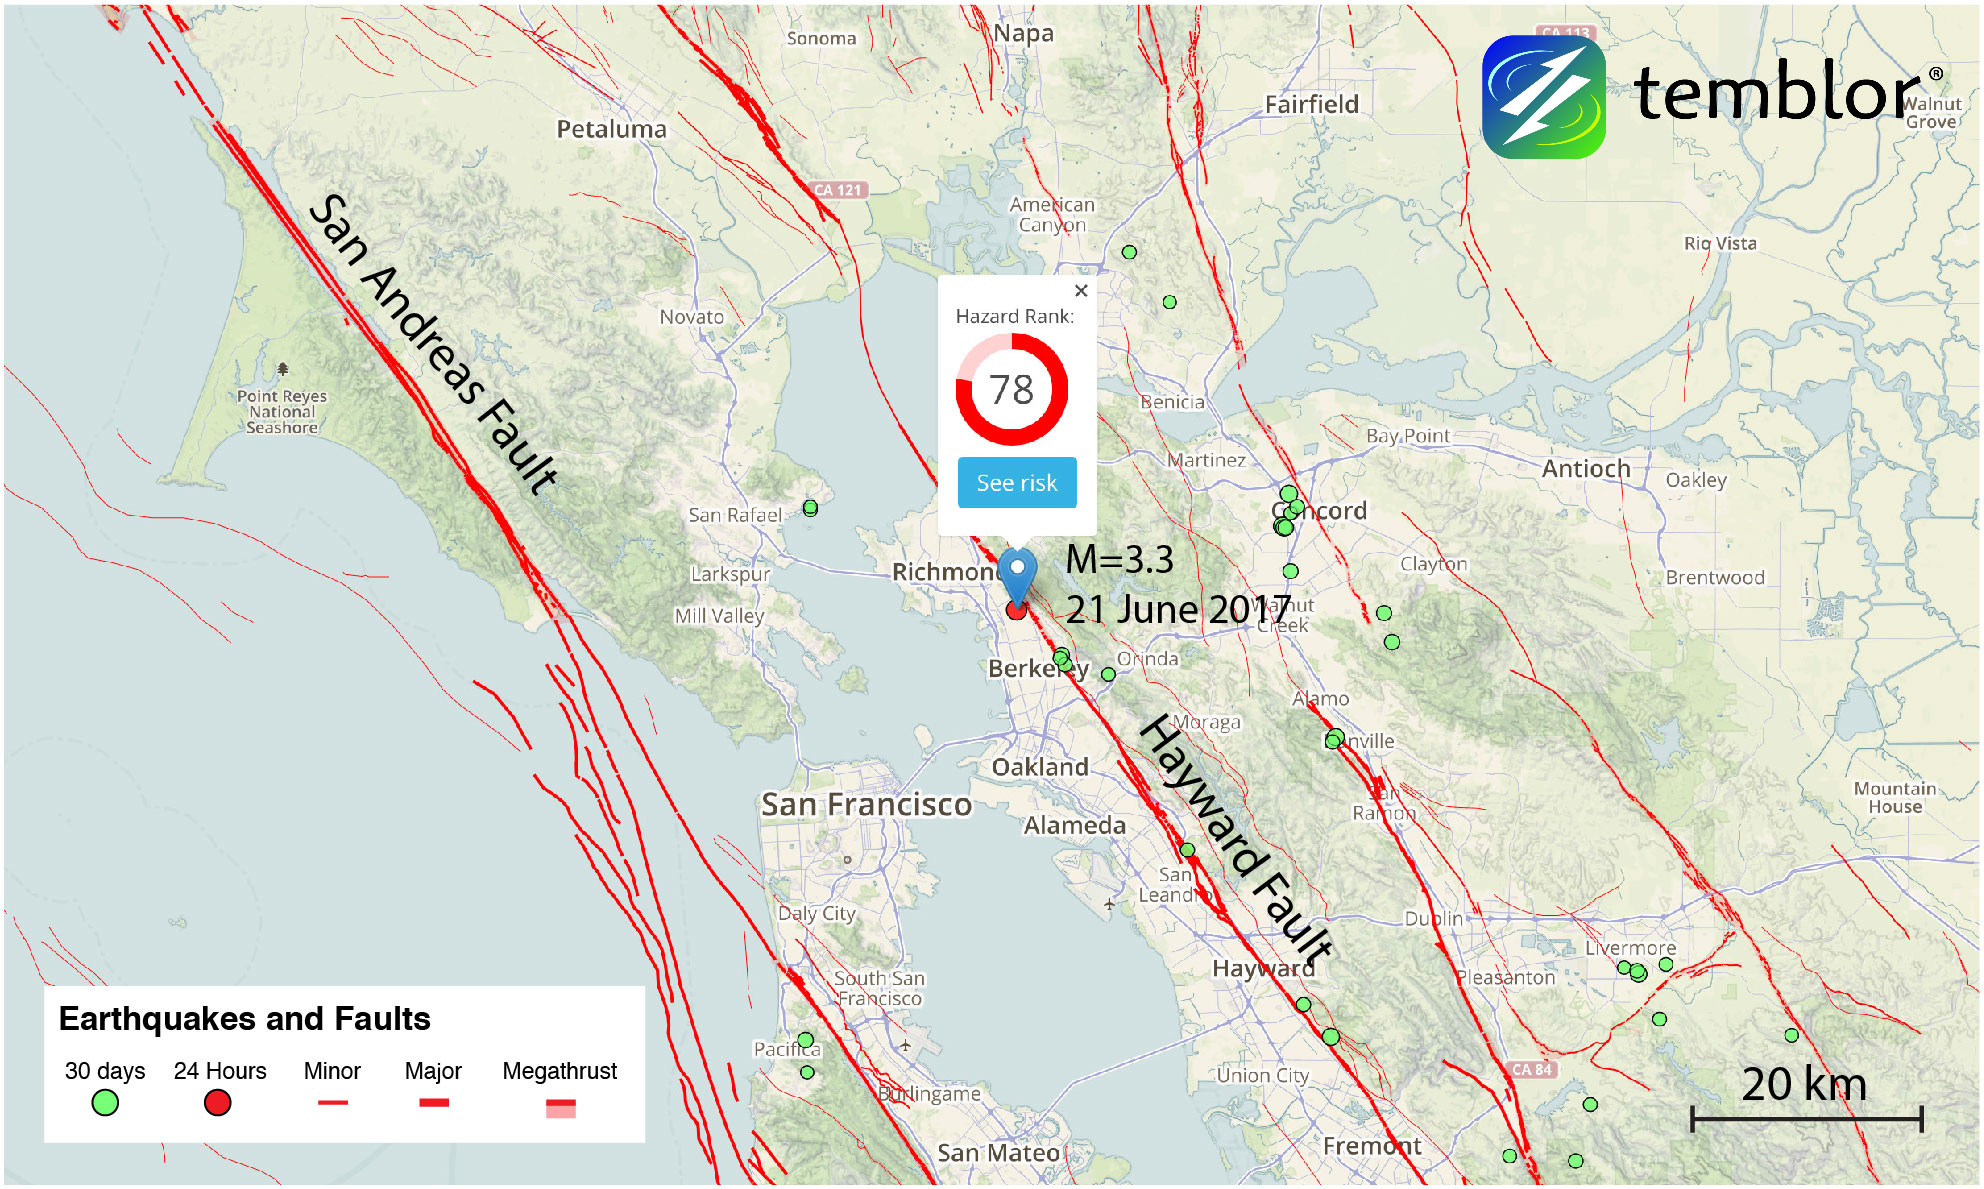 berkeley-oakland-sanfrancisc-earthquake-map-san-andreas-fault-hayward-fault-map